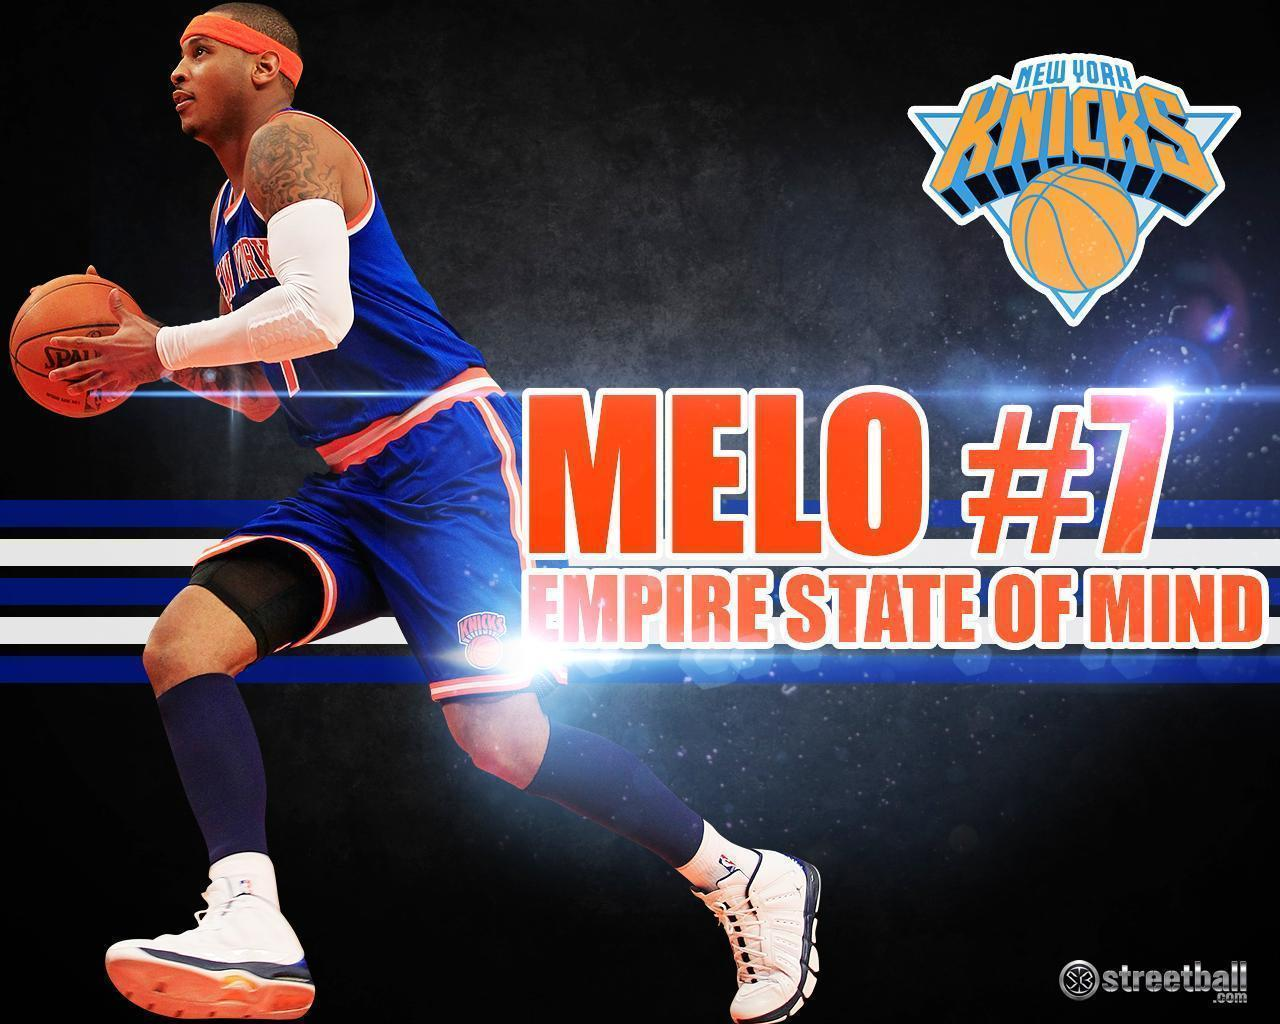 Ny Knicks Wallpaper Backgrounds 8 Pics